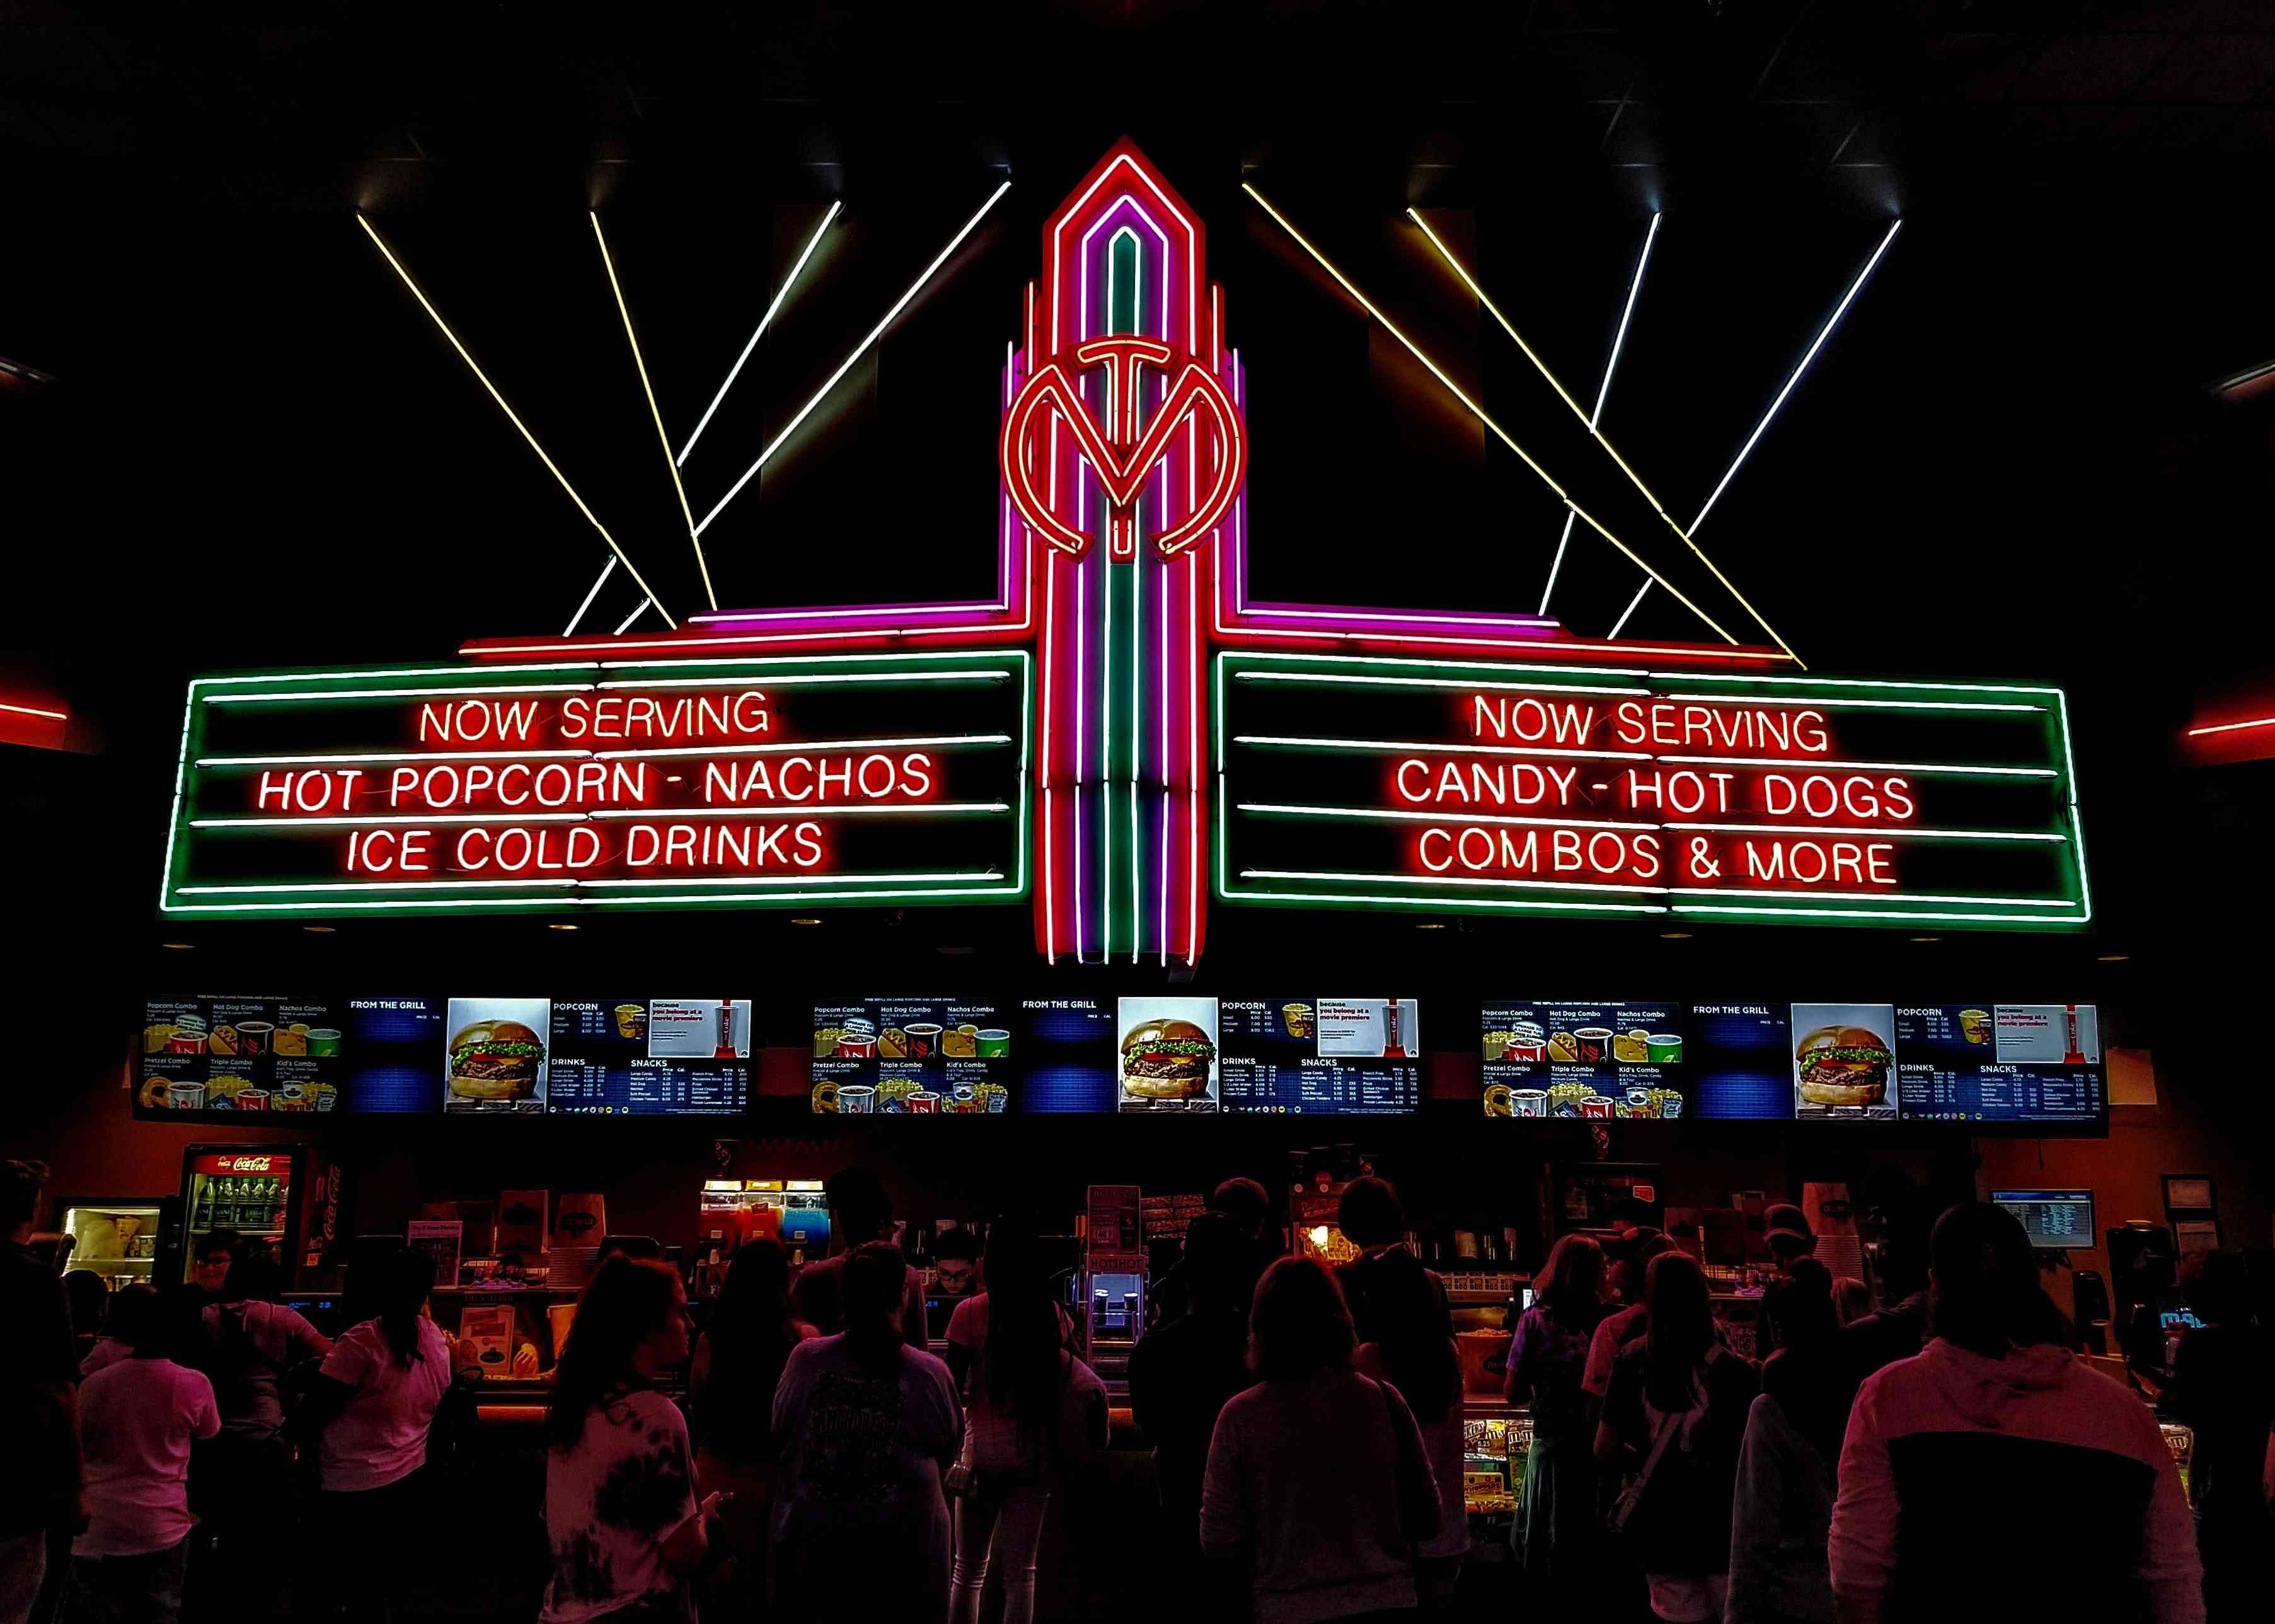 adult birthday party ideas - go to a movie theater